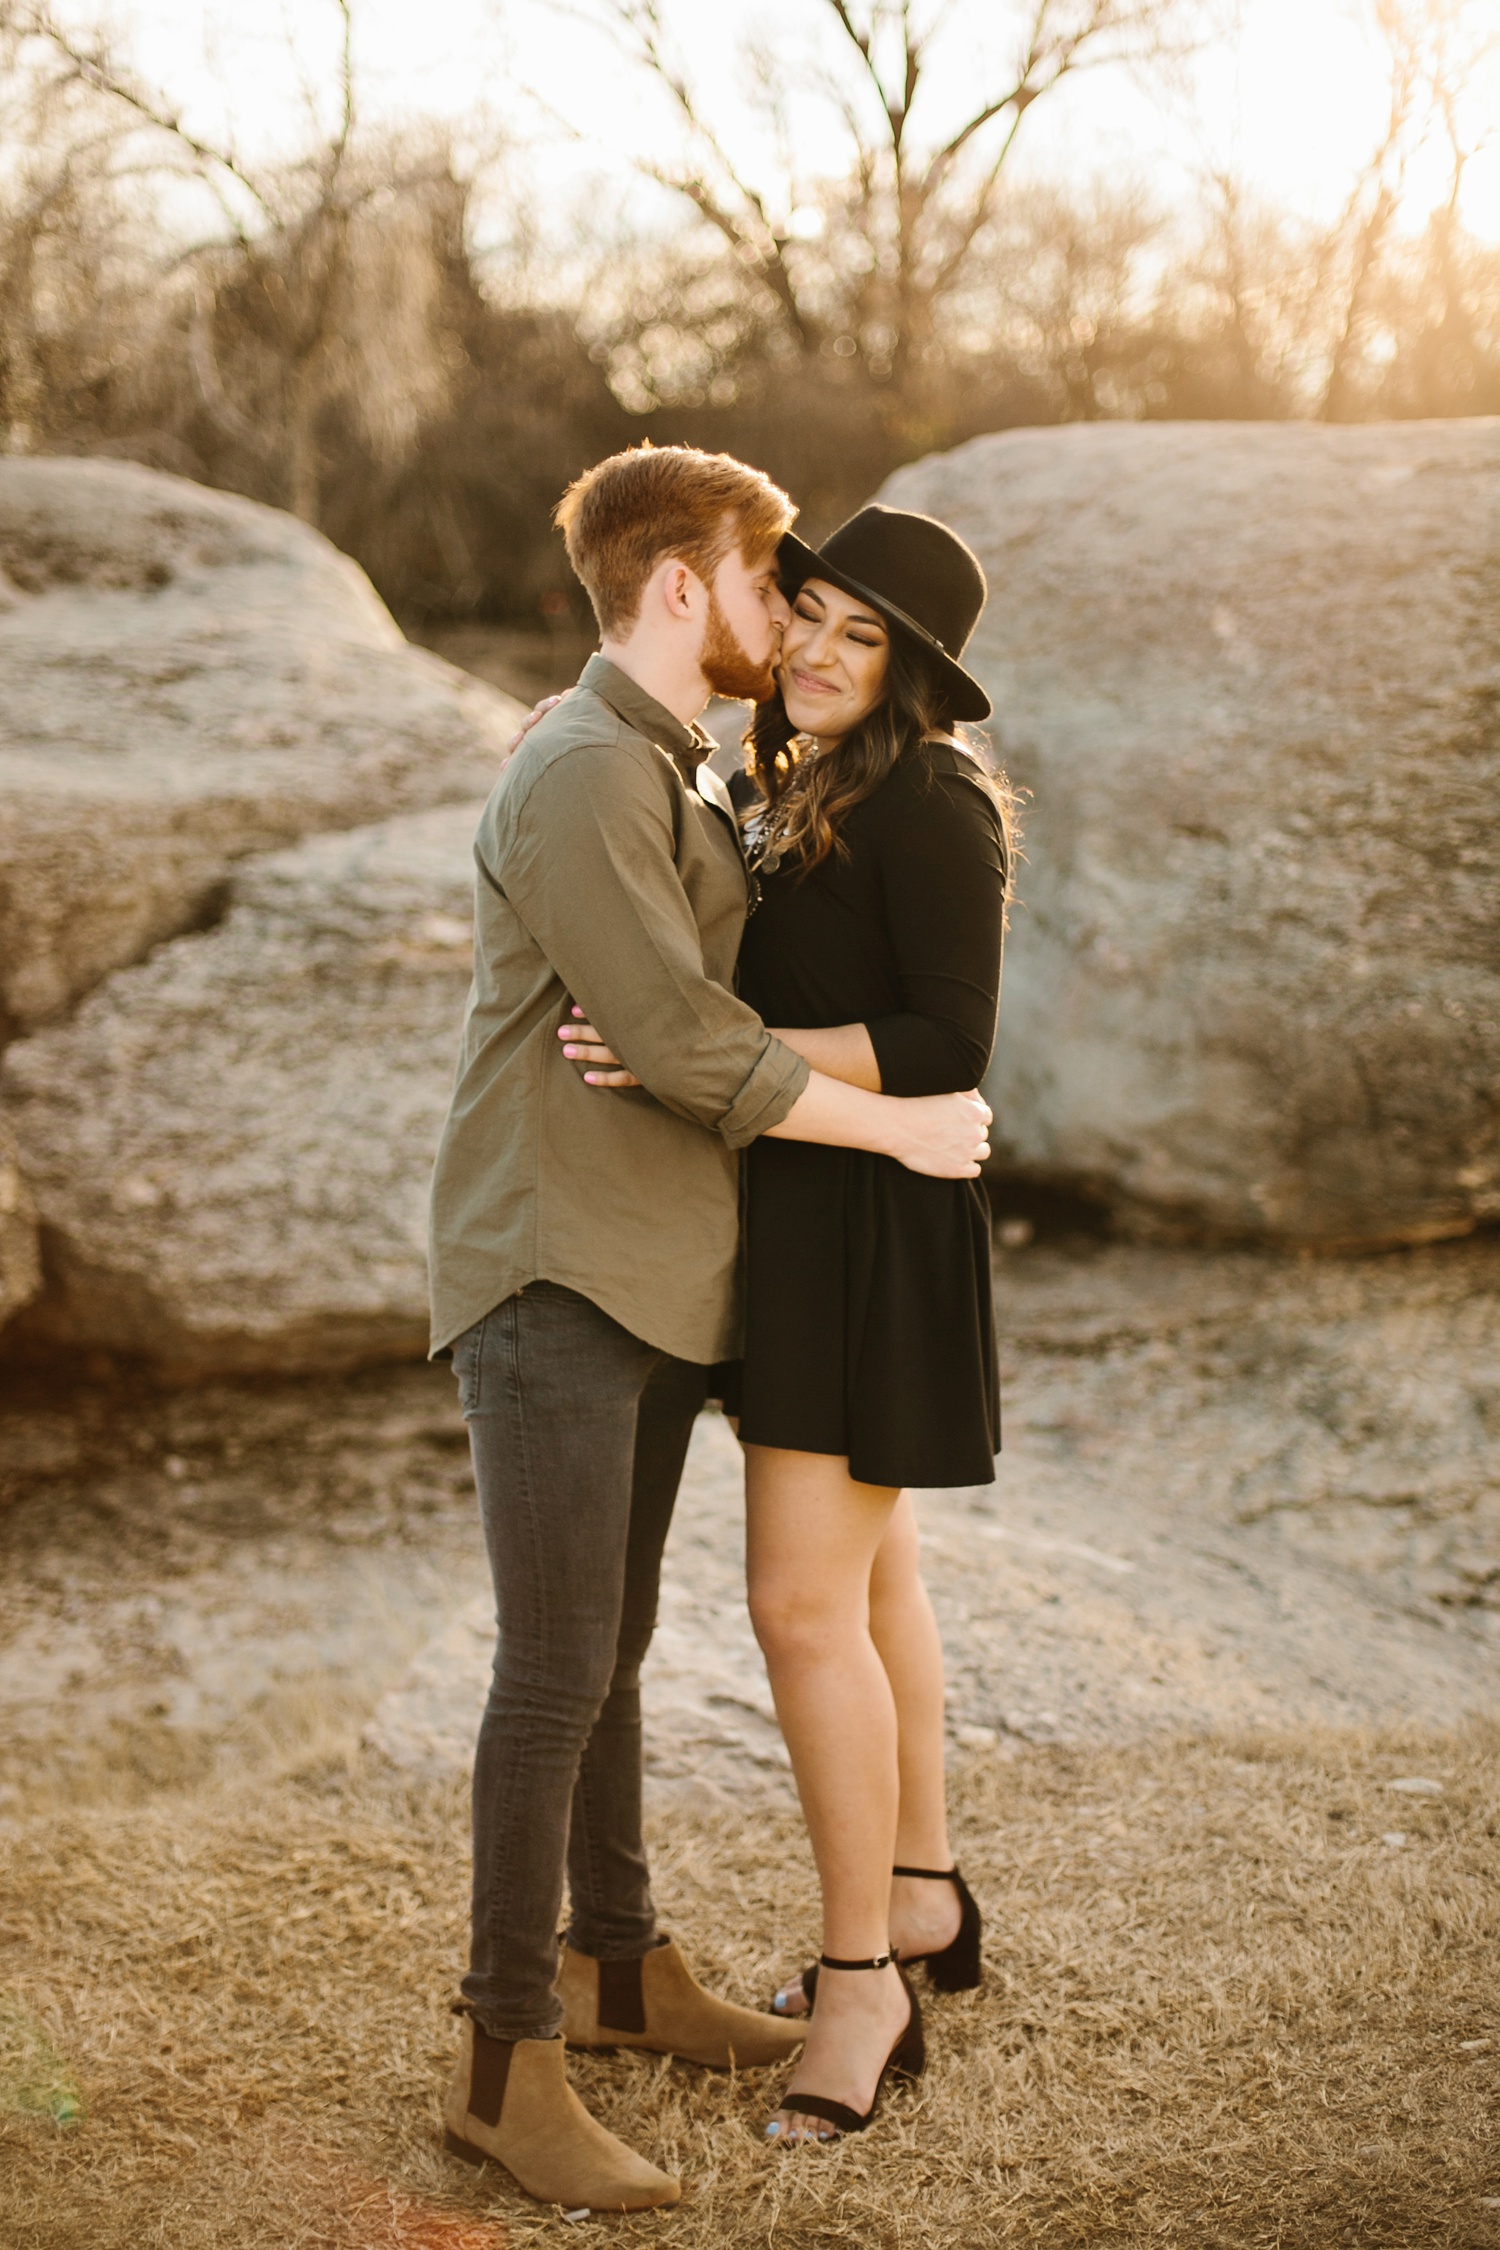 Grant + Lysette - floral dress engagement session by North Texas Wedding Photographer Rachel Meagan Photography046